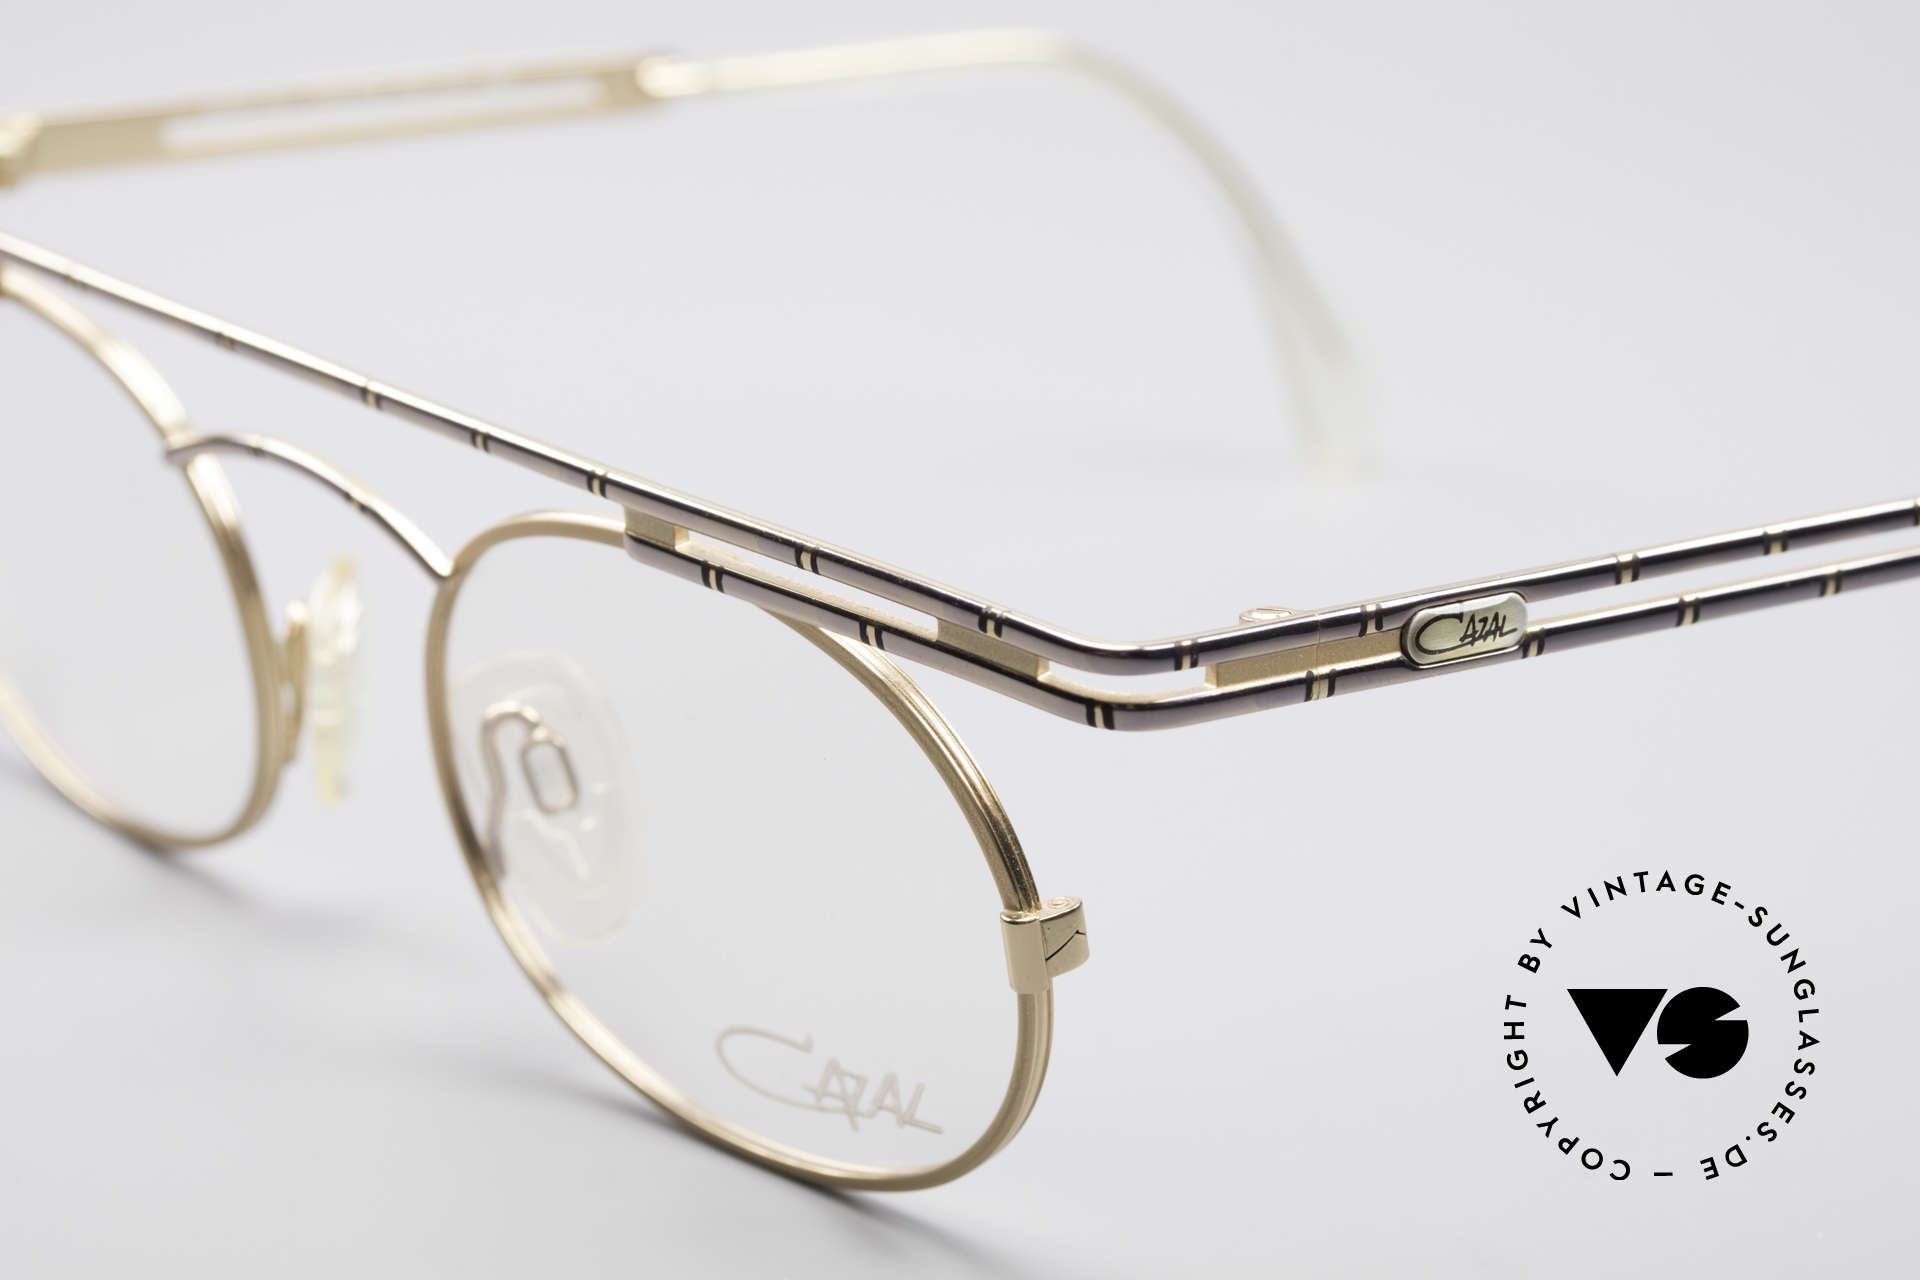 Cazal 761 NO Retro Glasses True Vintage, new old stock (like all our rare vintage Cazal specs), Made for Men and Women